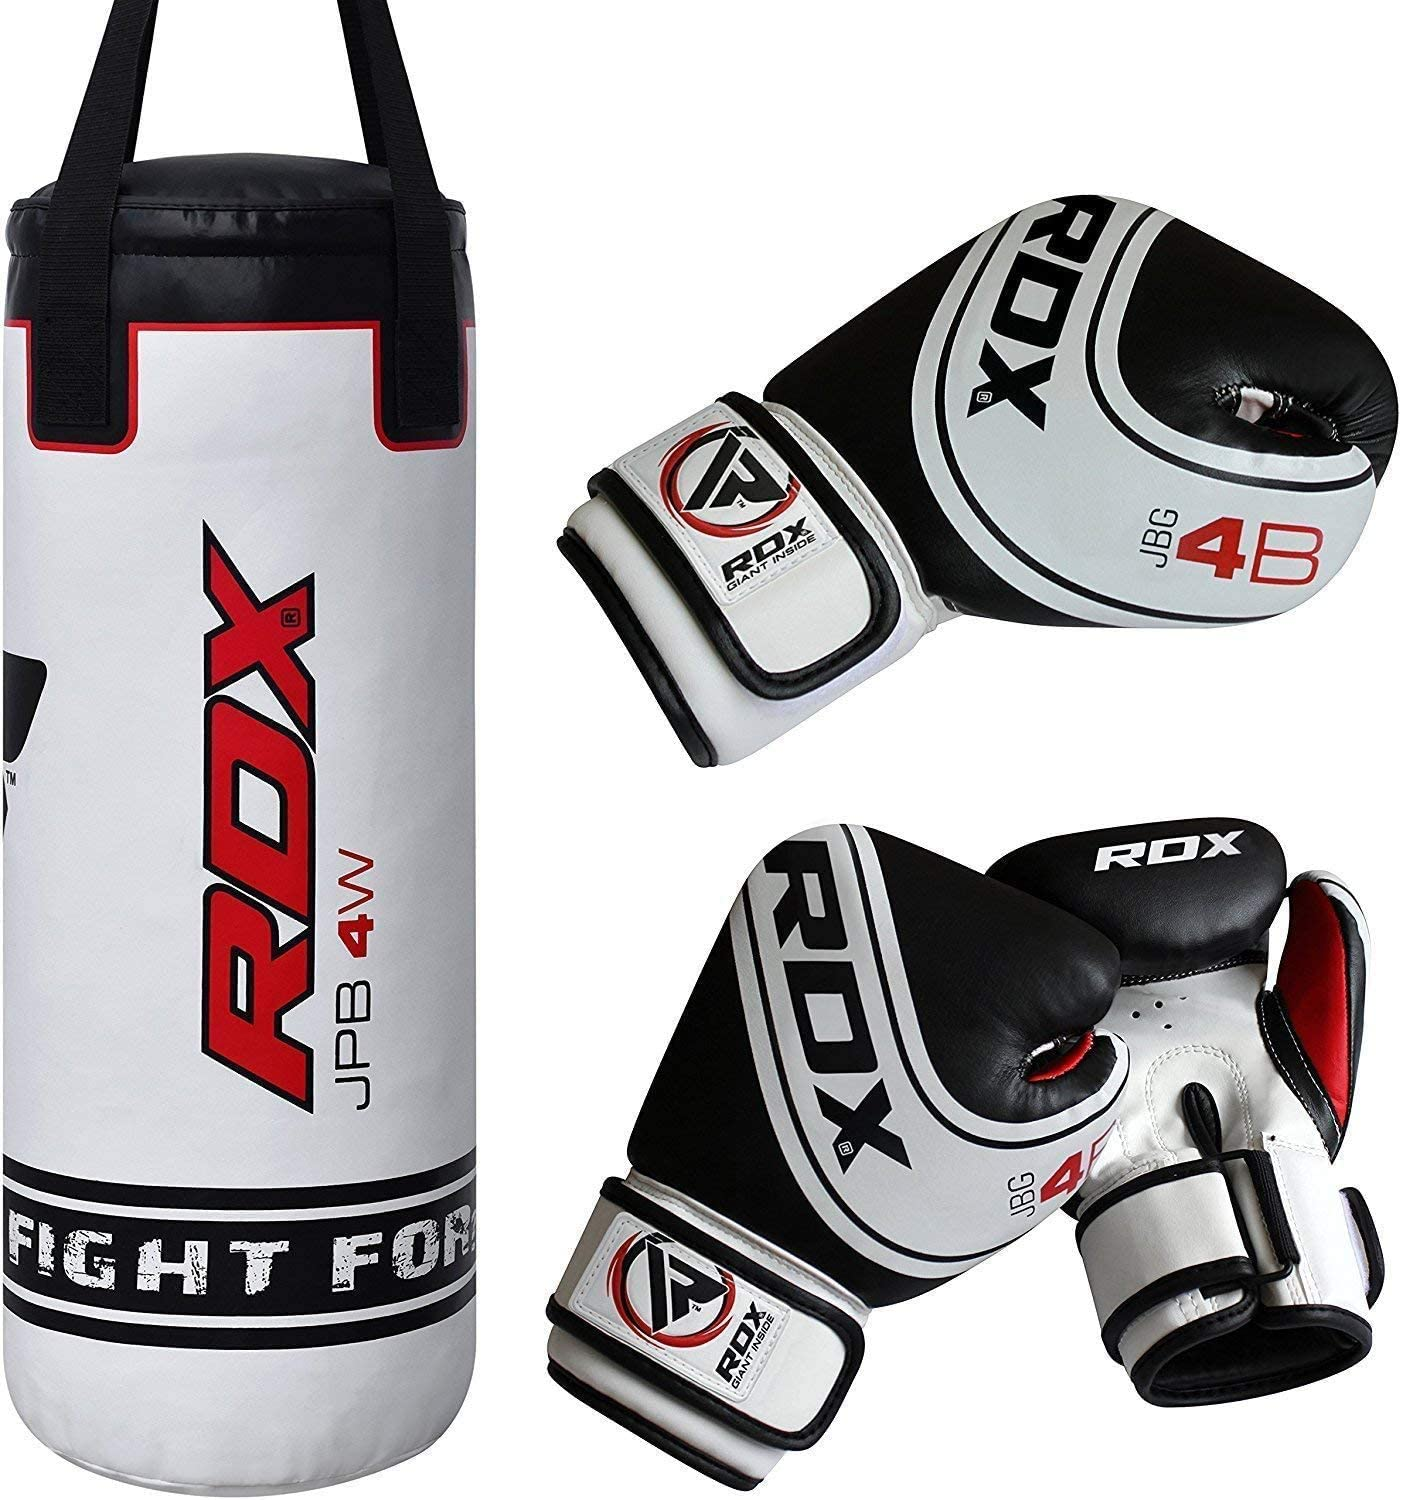 RDX Kids Punching Bag with Boxing 2FT Unfilled Many popular brands Gloves S Outstanding Hanging